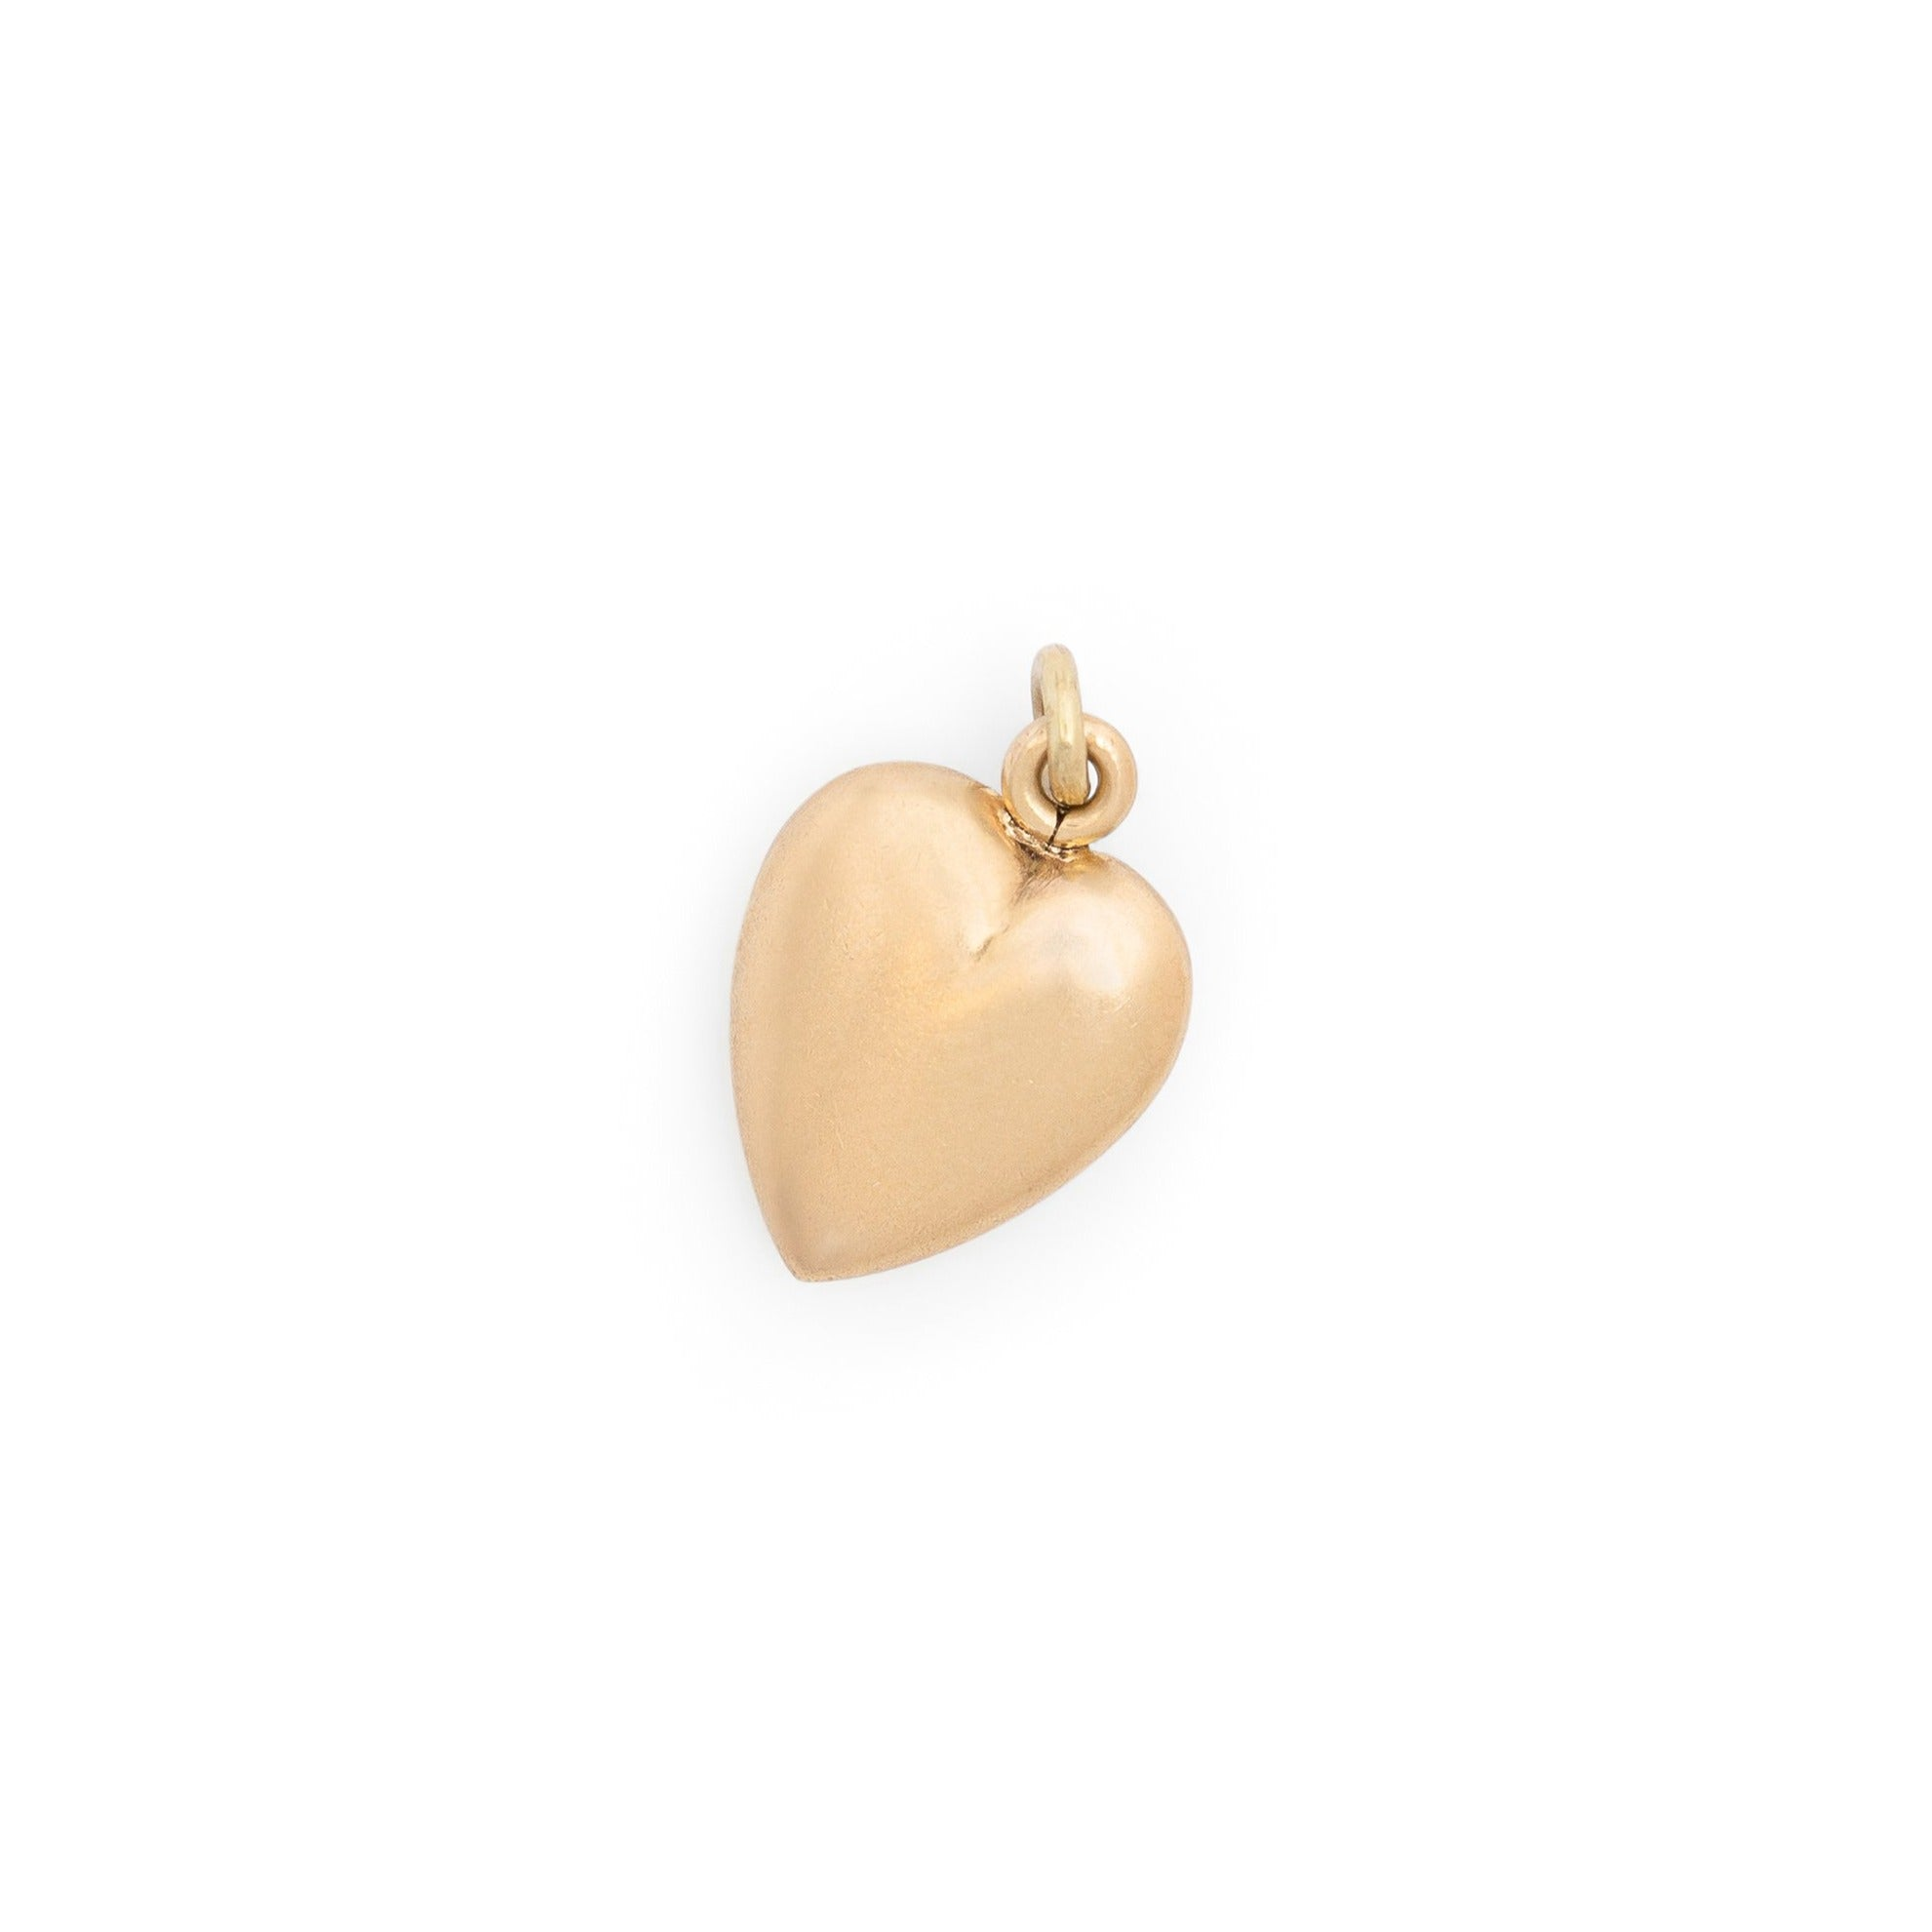 Solid Gold Heart 14K Charm